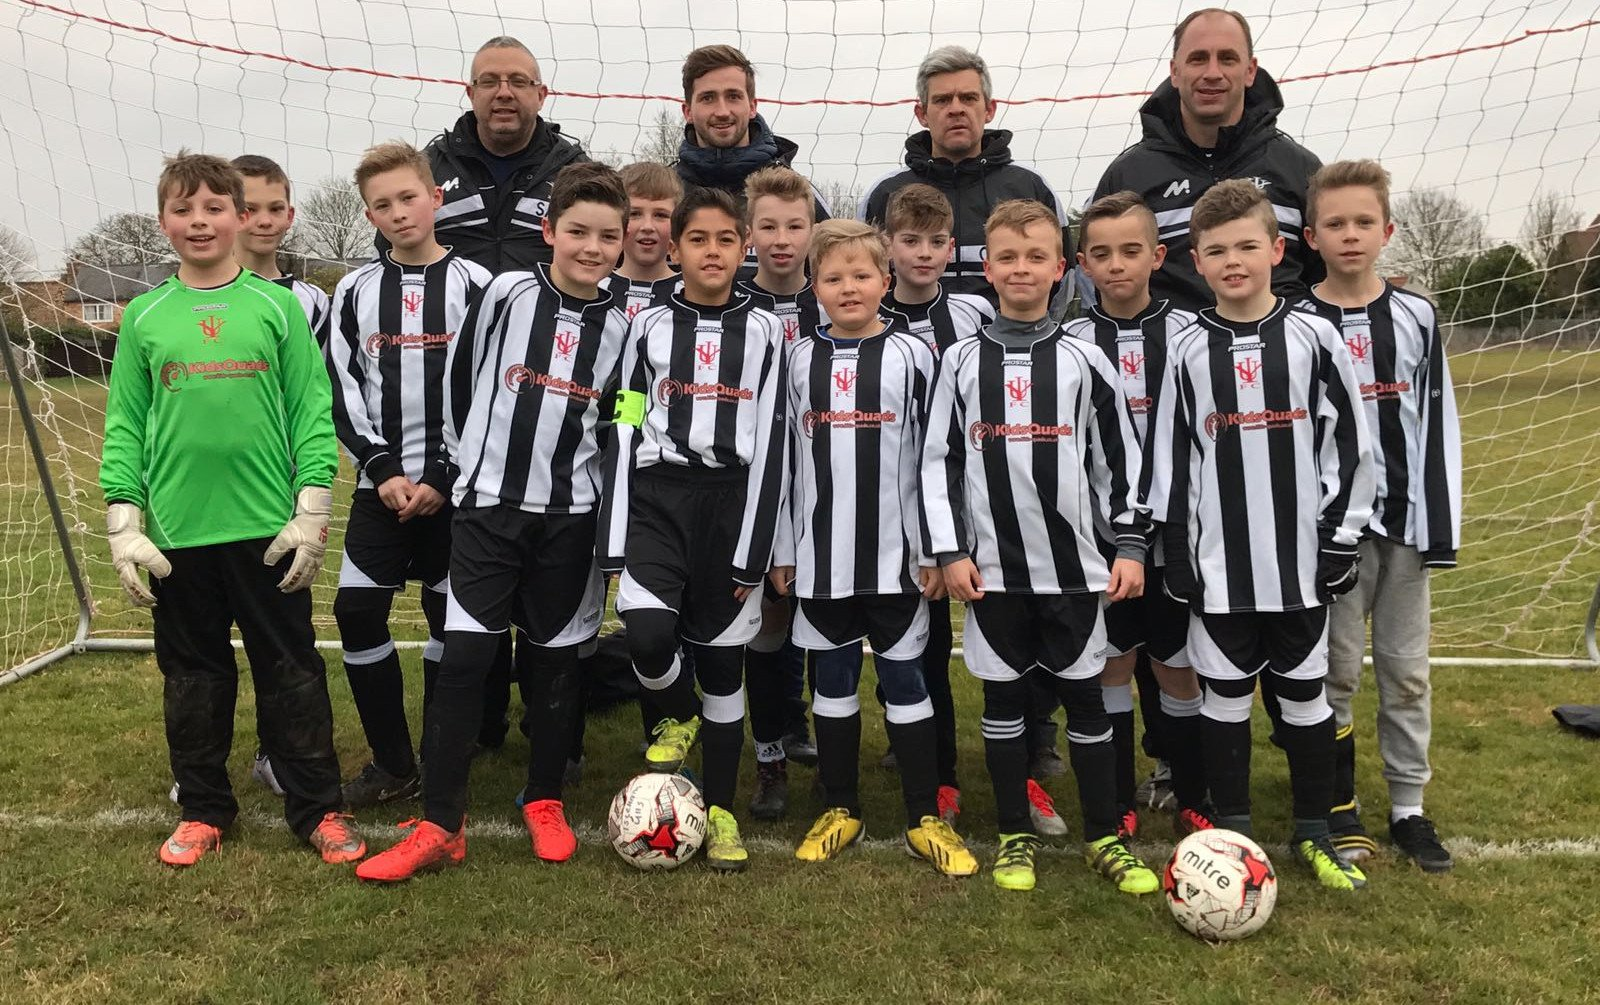 Kids Quads Sponsors the Isleham Youth Football Team - Under 11's